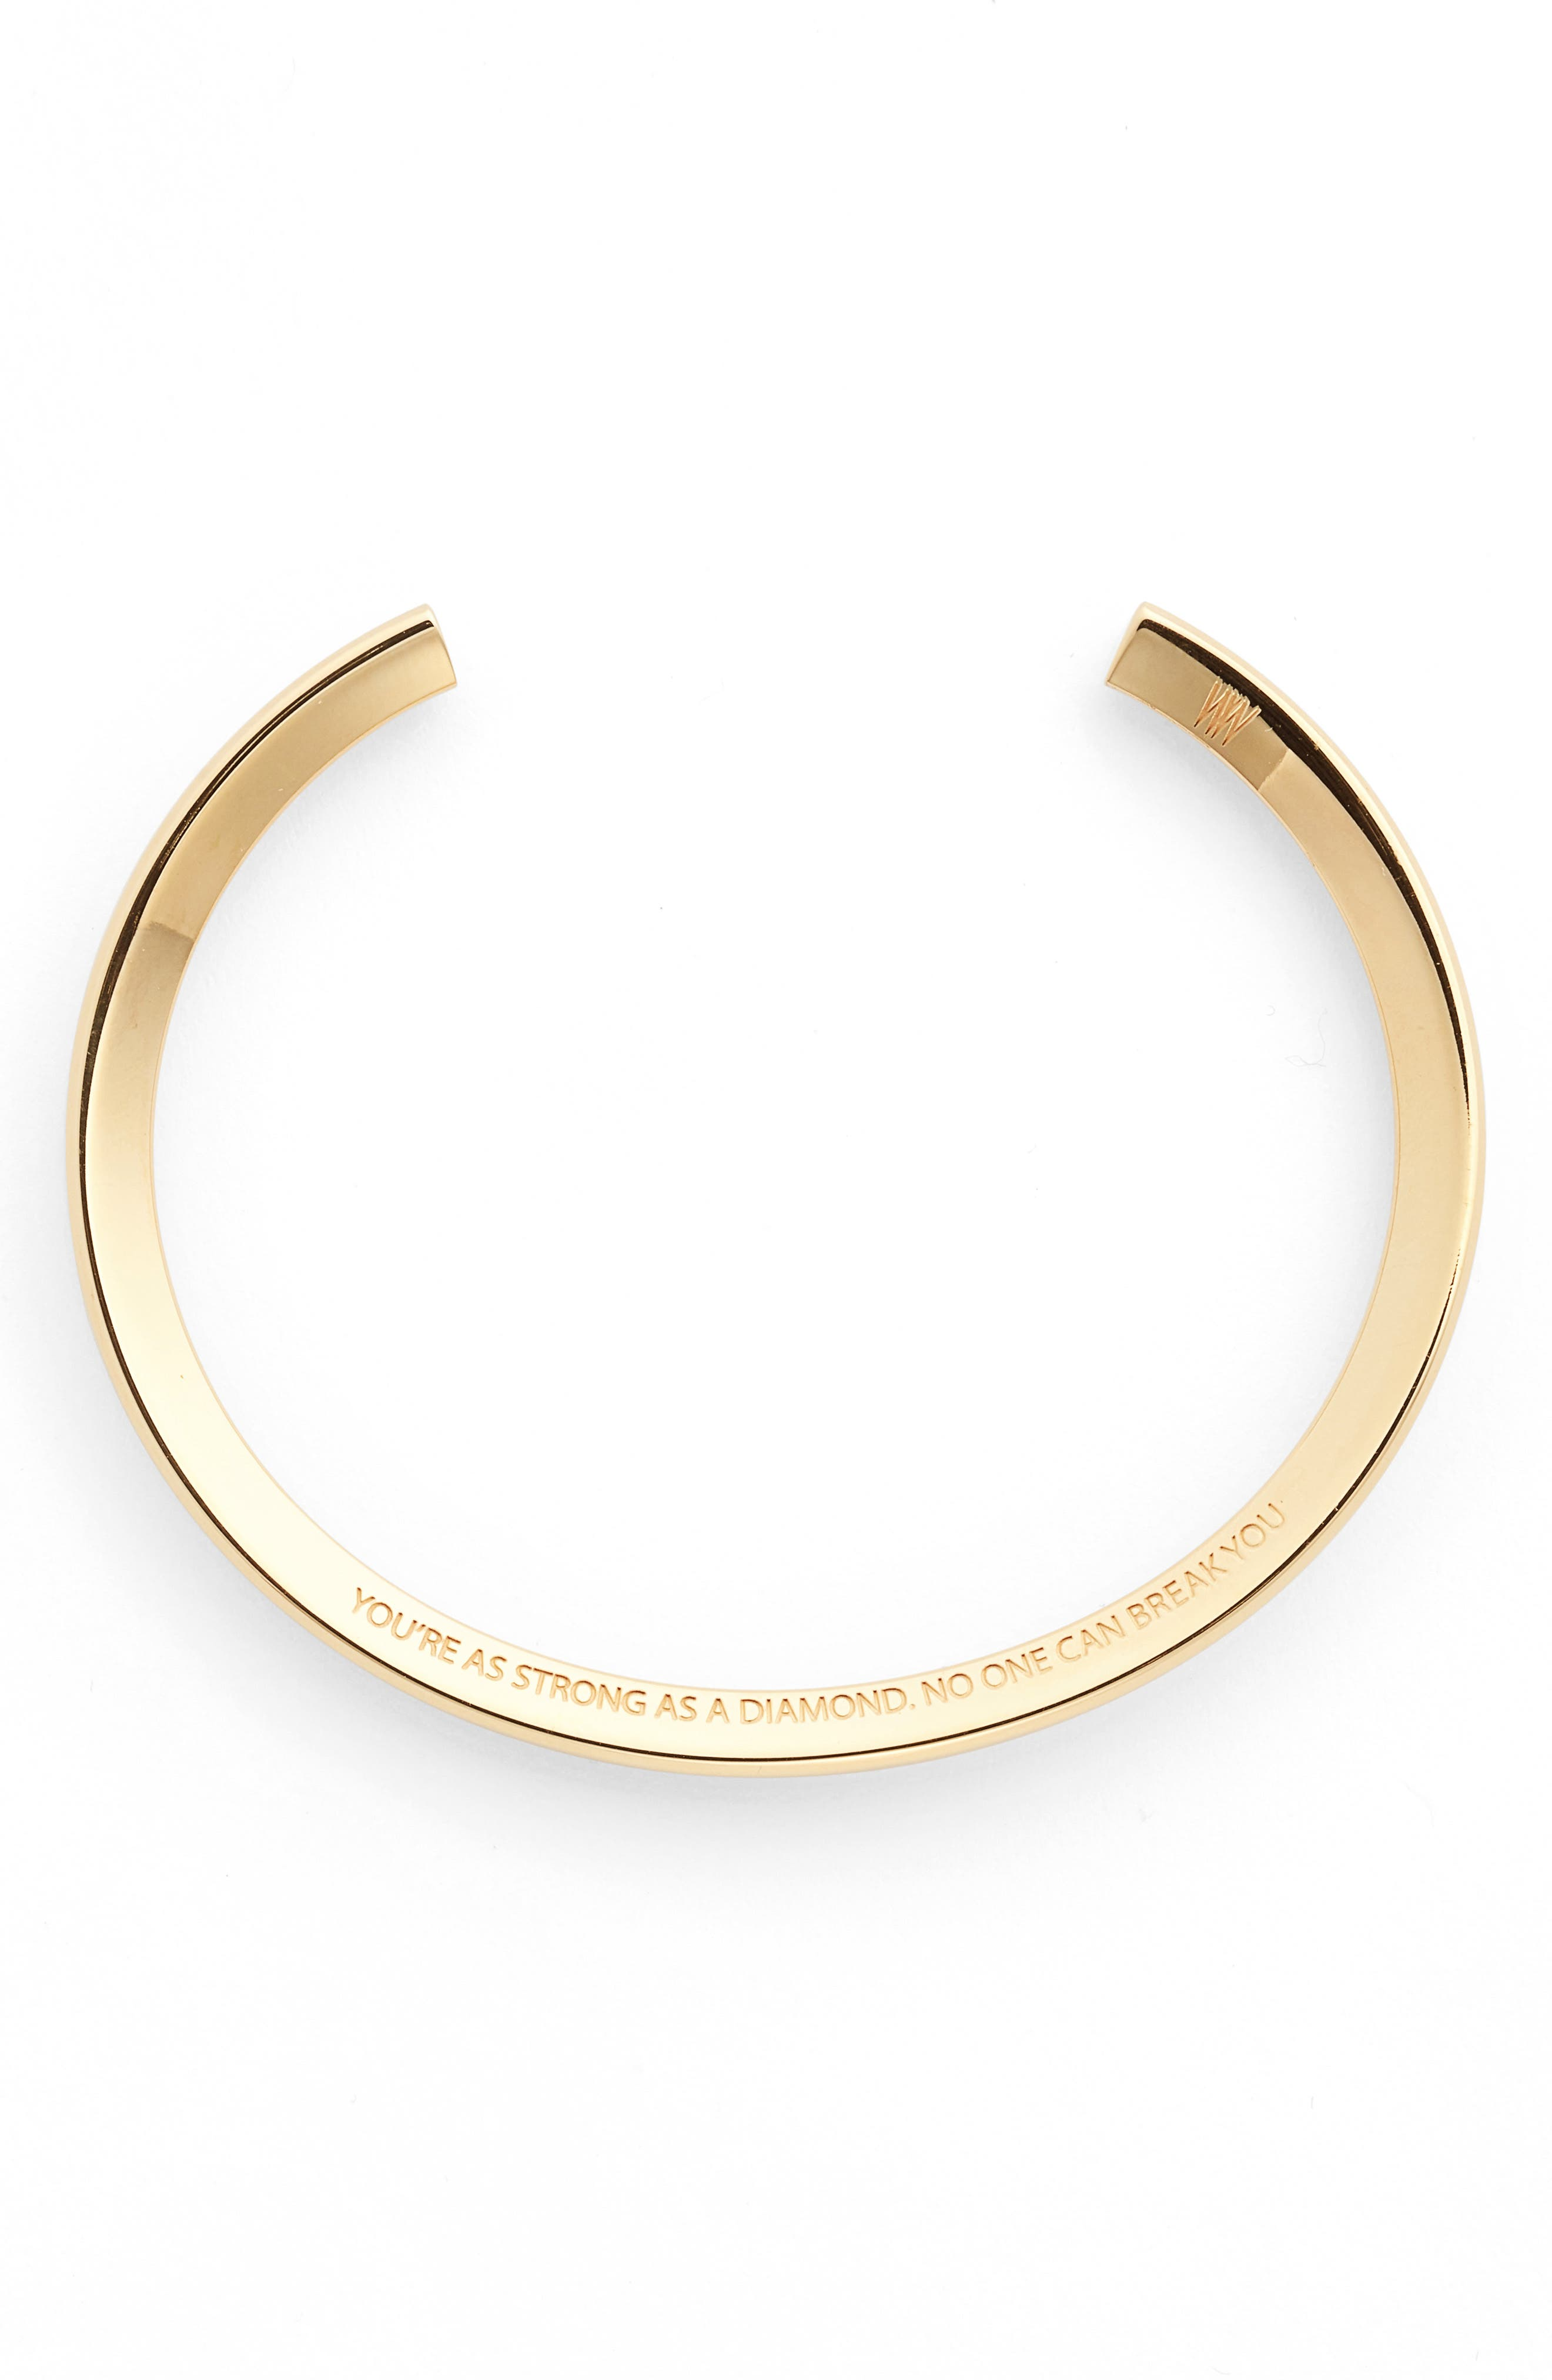 You're as Strong as a Diamond Cuff,                         Main,                         color, Gold